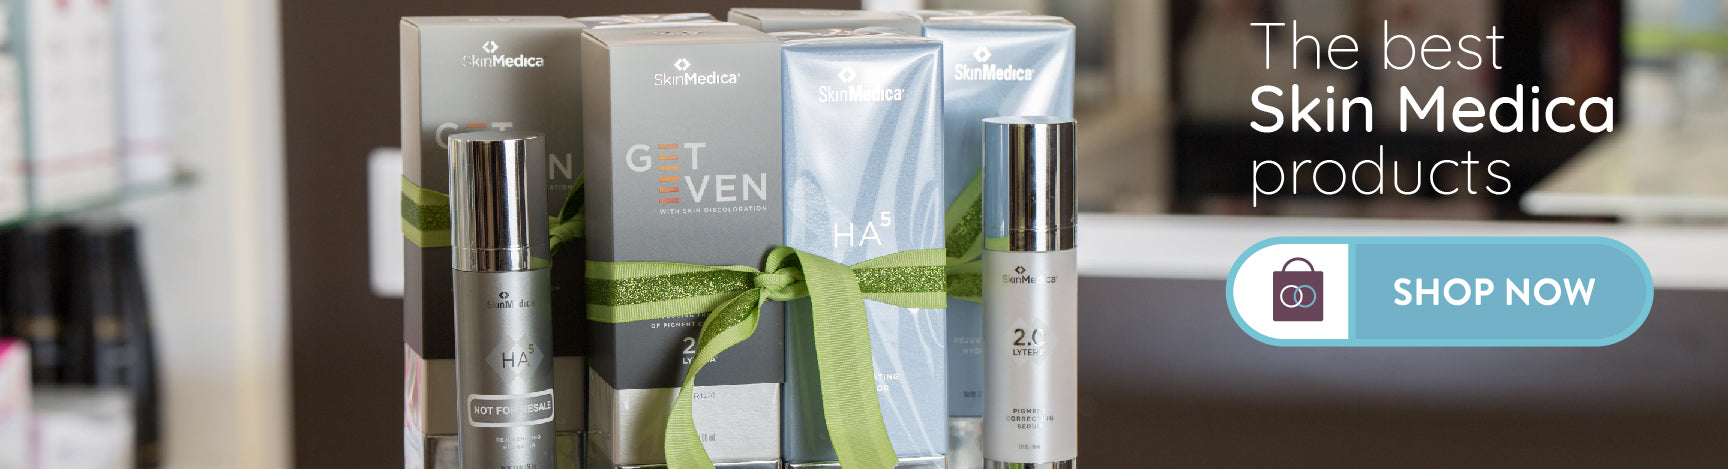 Browse our Skin Medica Product collection!